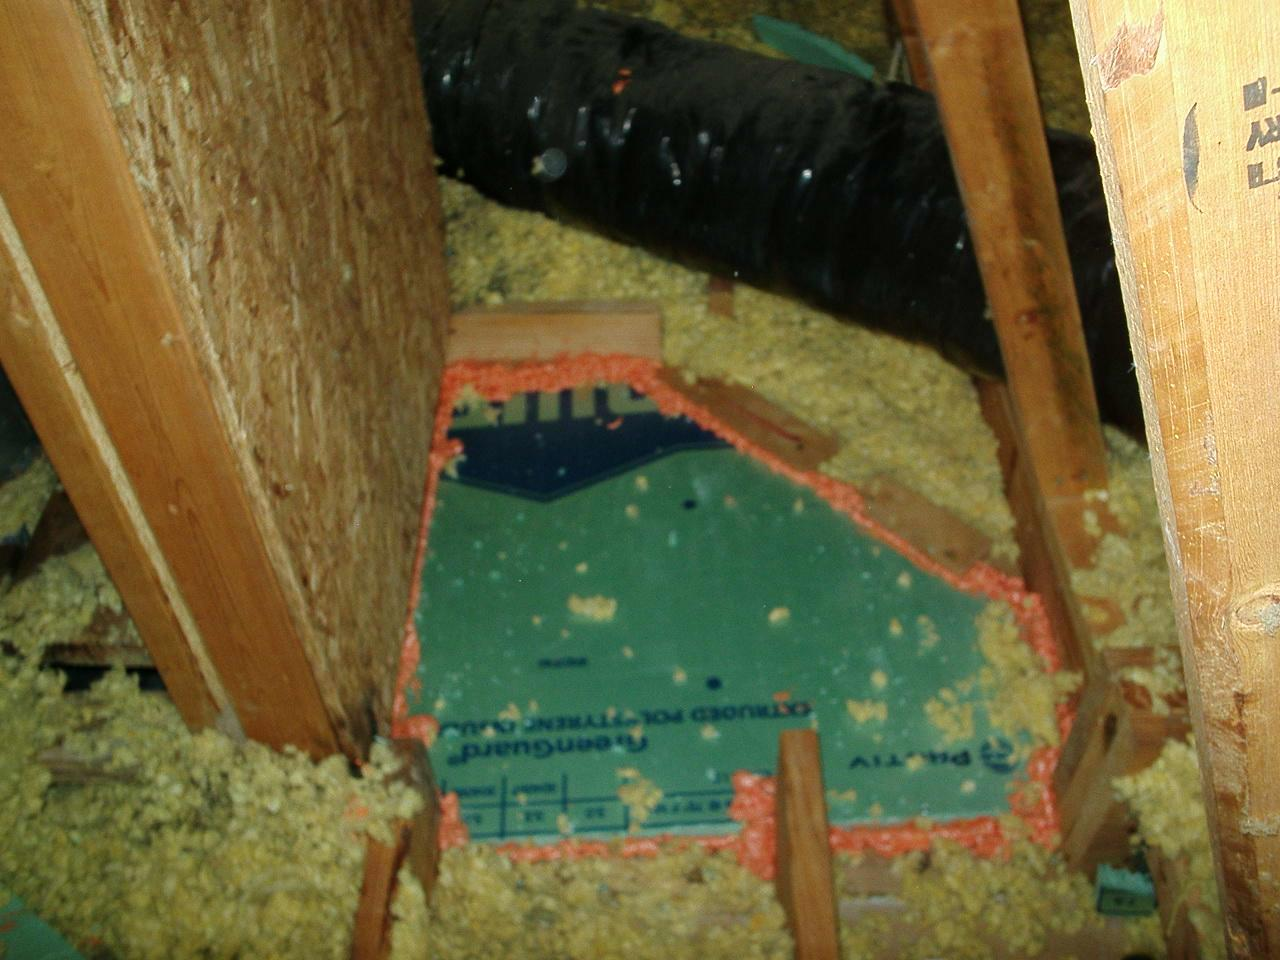 Sealing the Attic Leaks in Pittsboro, IN - After Photo